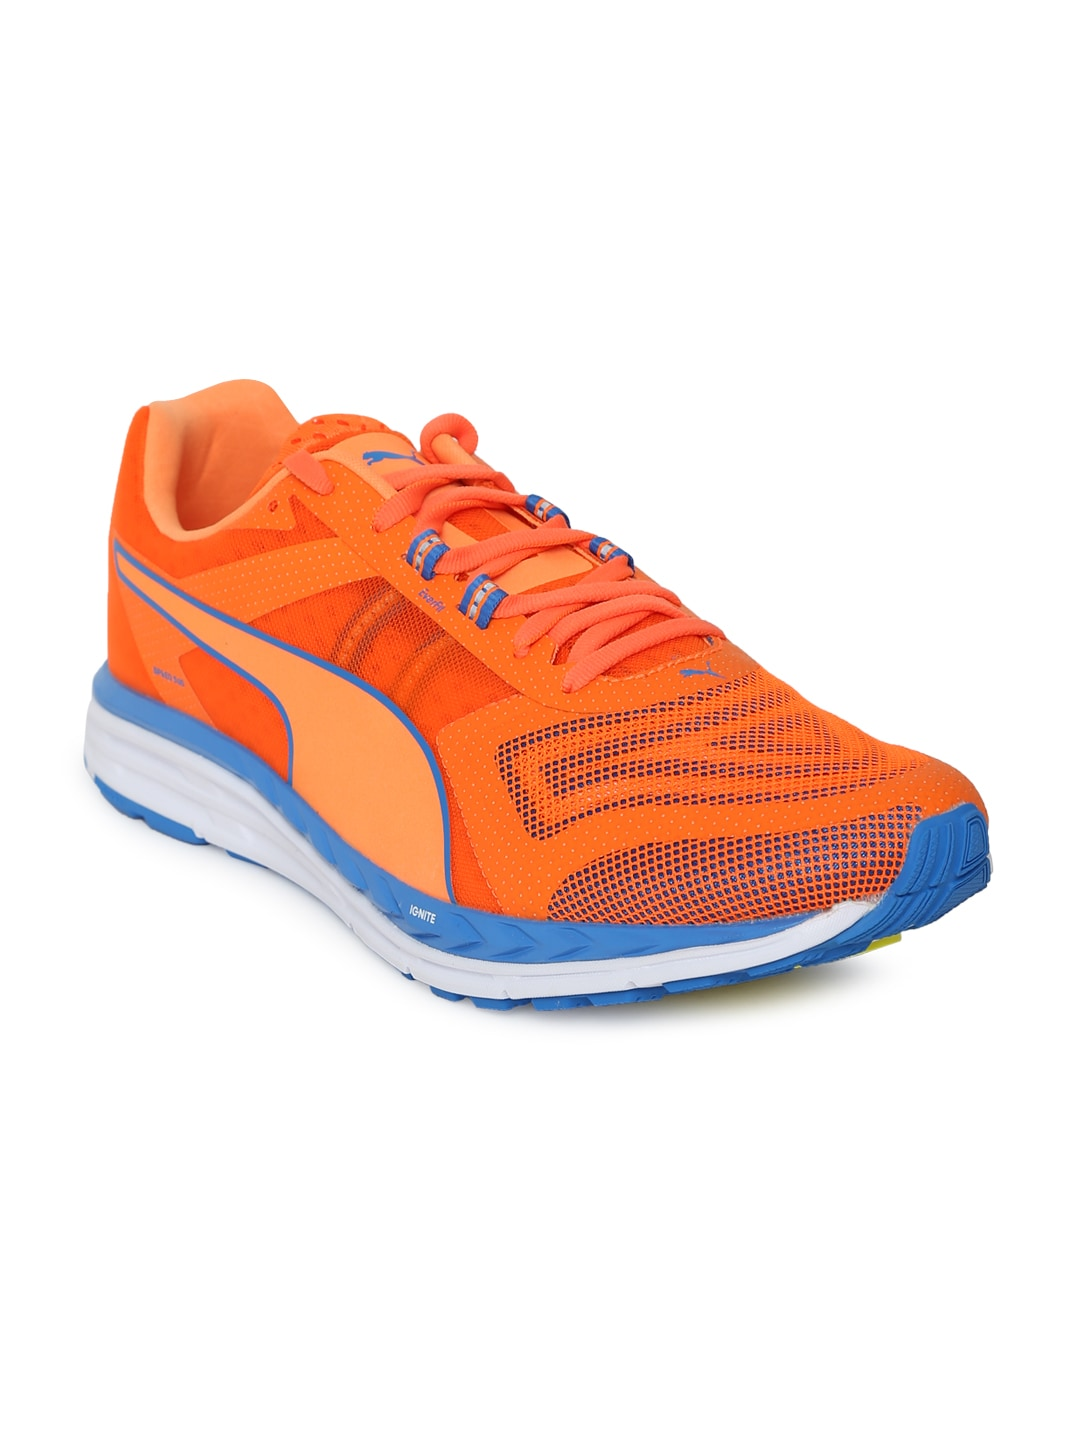 Sports Shoes for Men - Buy Men Sports Shoes Online in India - Myntra 5a0961944